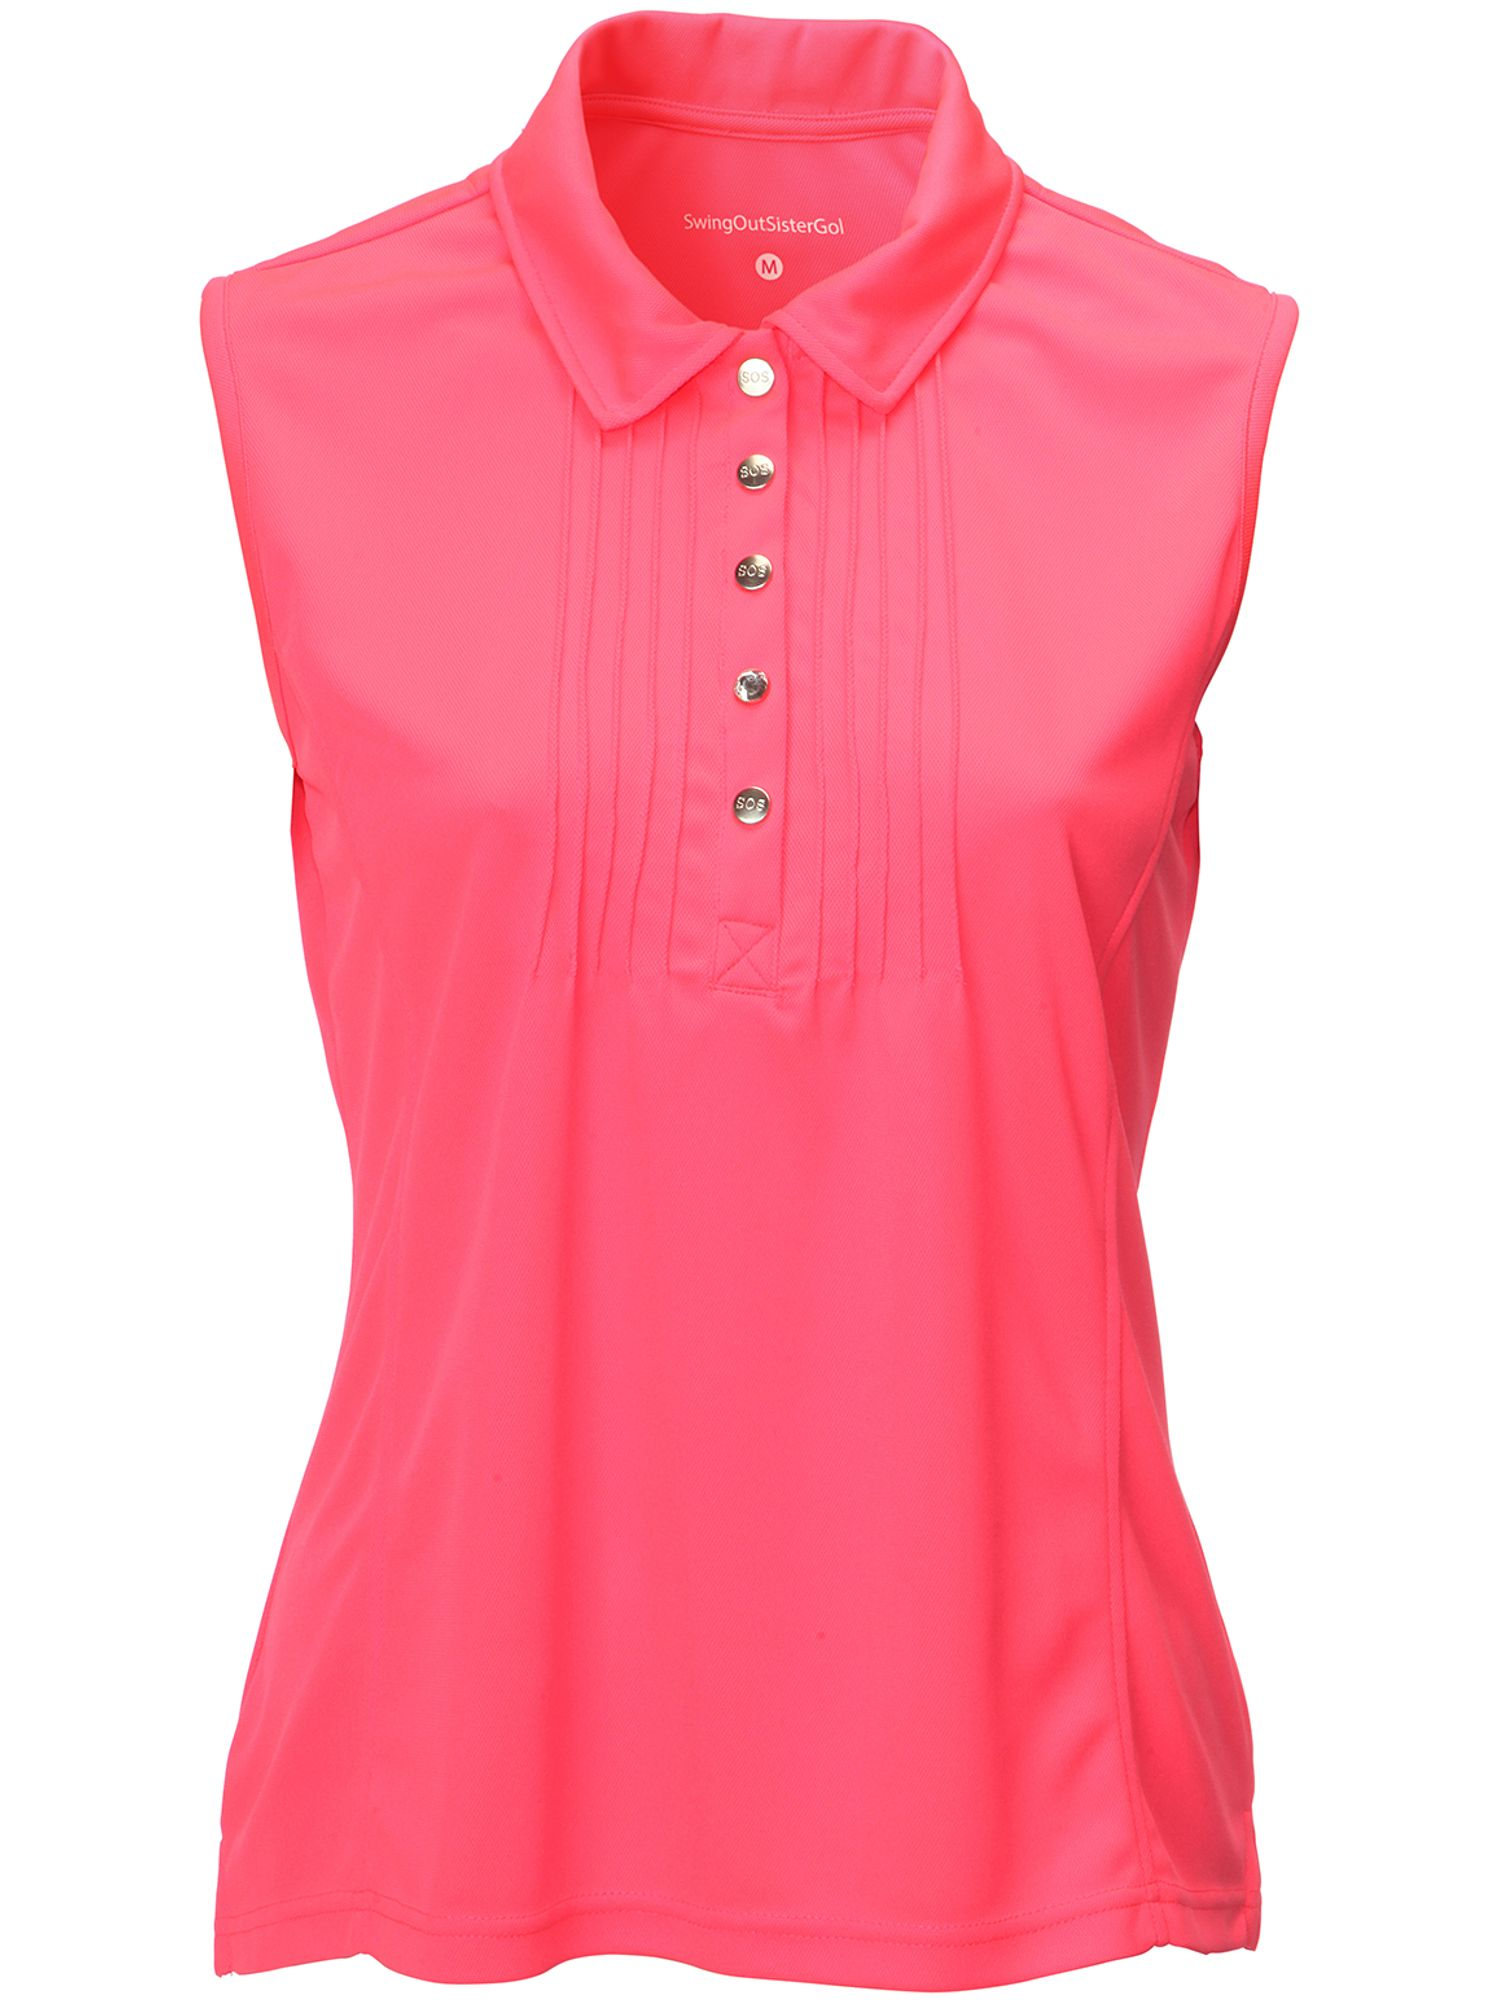 Swing Out Sister Adele Pique Sleeveless Shirt, Pink